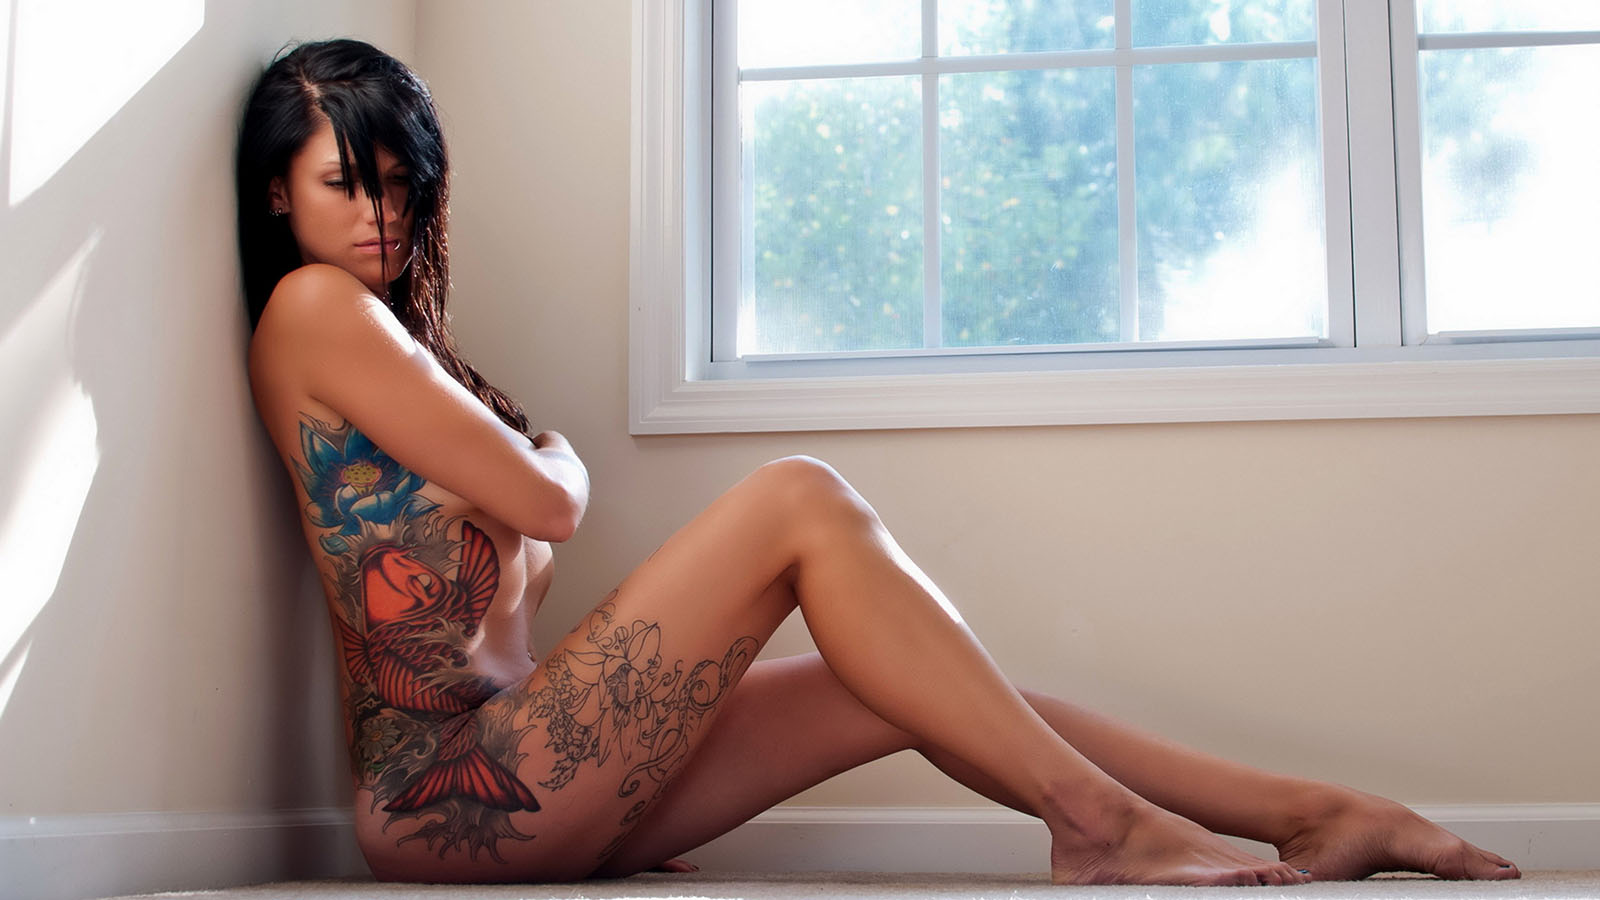 Top 6 Best Places for Female Erotic Tattoos